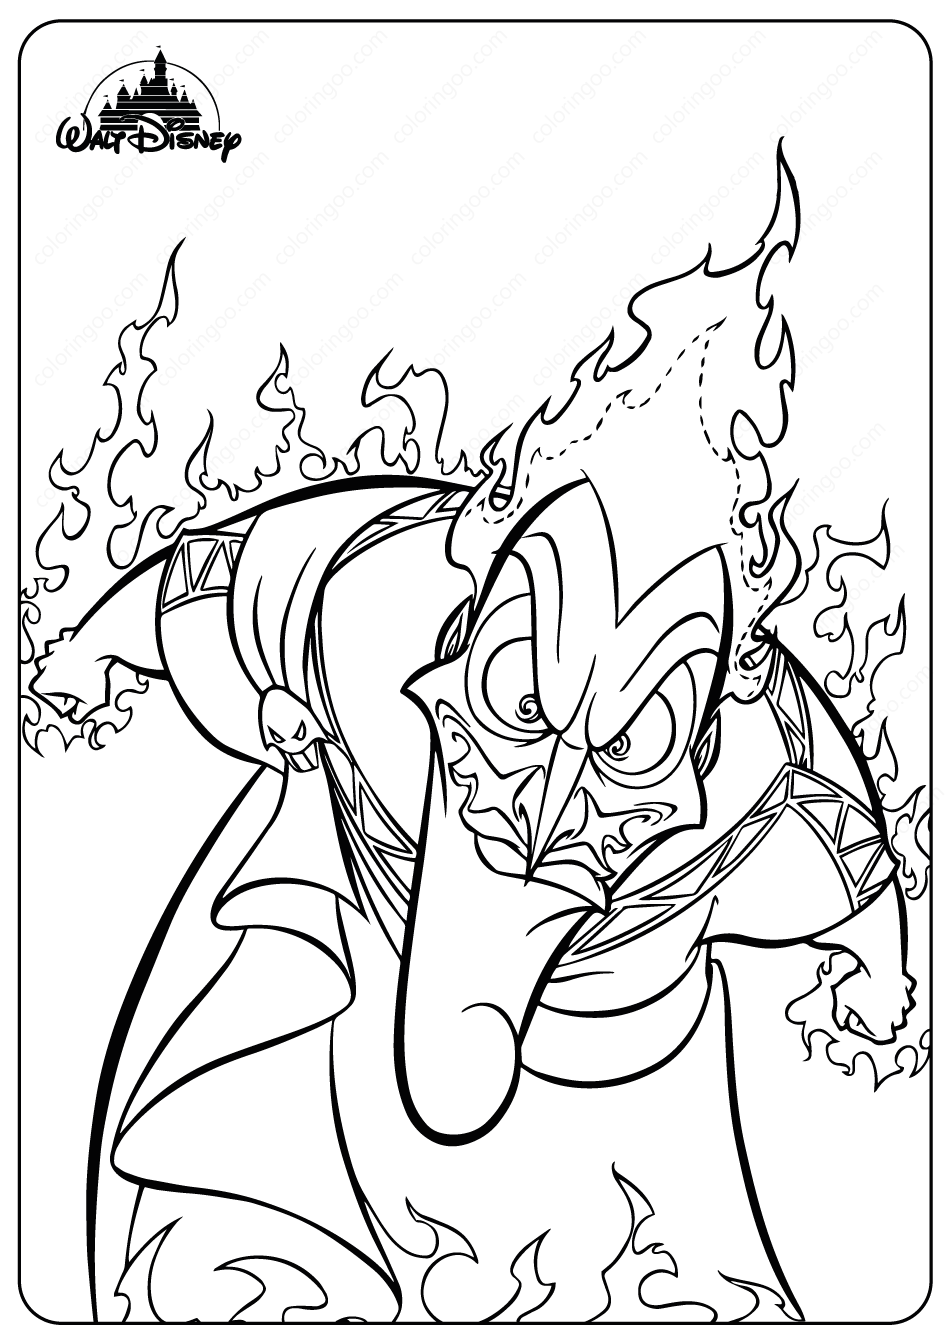 Printable Disney Evil Hades Coloring Pages High Quality Free Printable Coloring Drawing Pa In 2021 Disney Princess Coloring Pages Coloring Pages Baby Coloring Pages